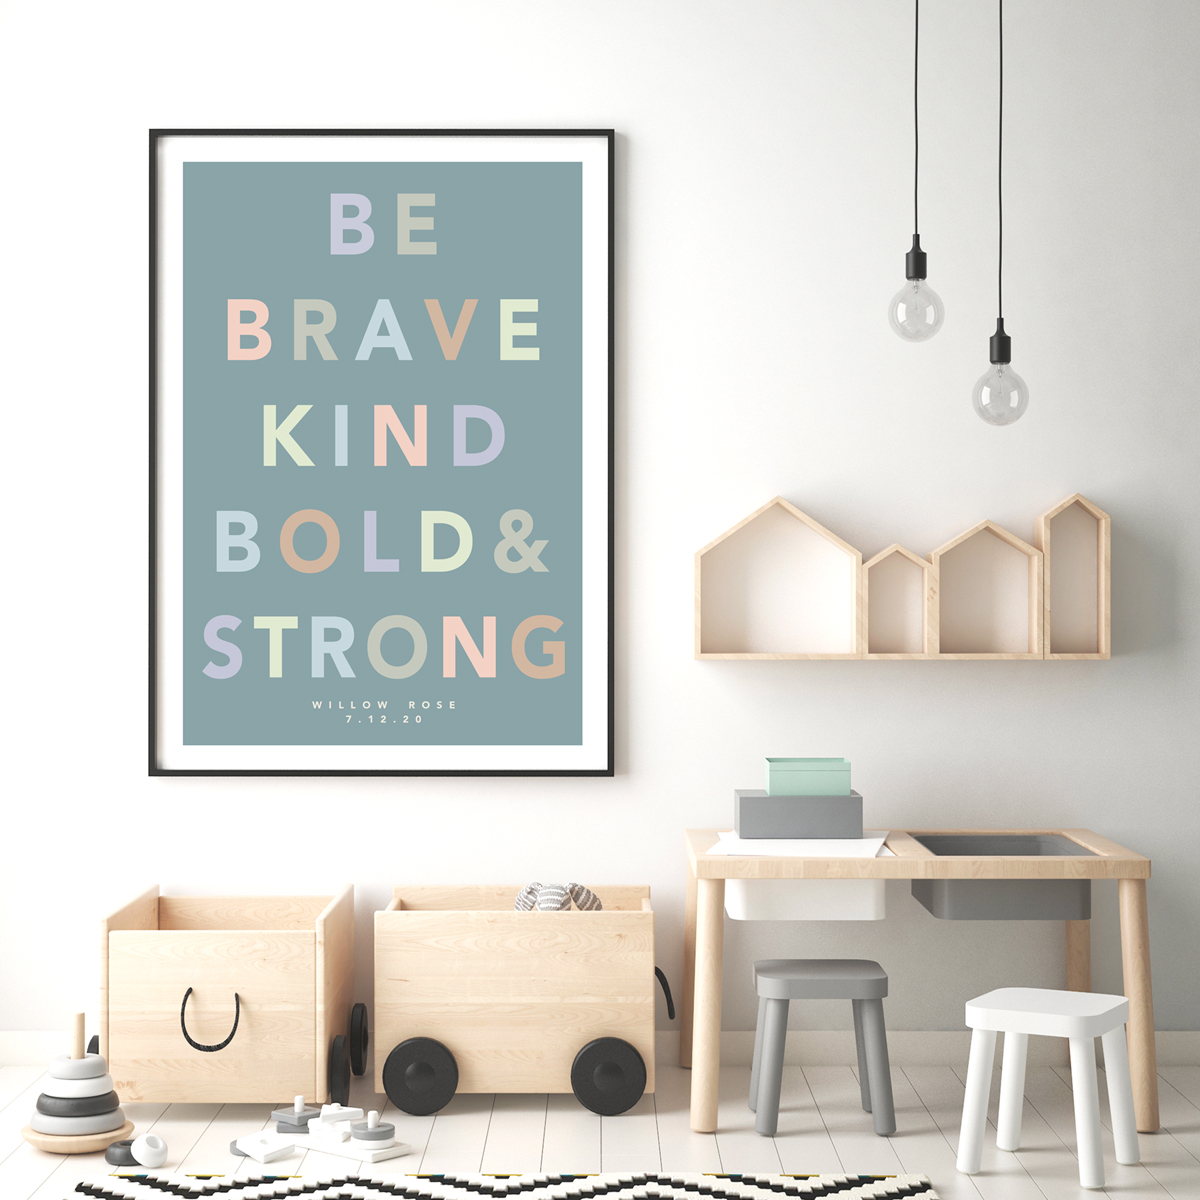 Be brave bold teal framed